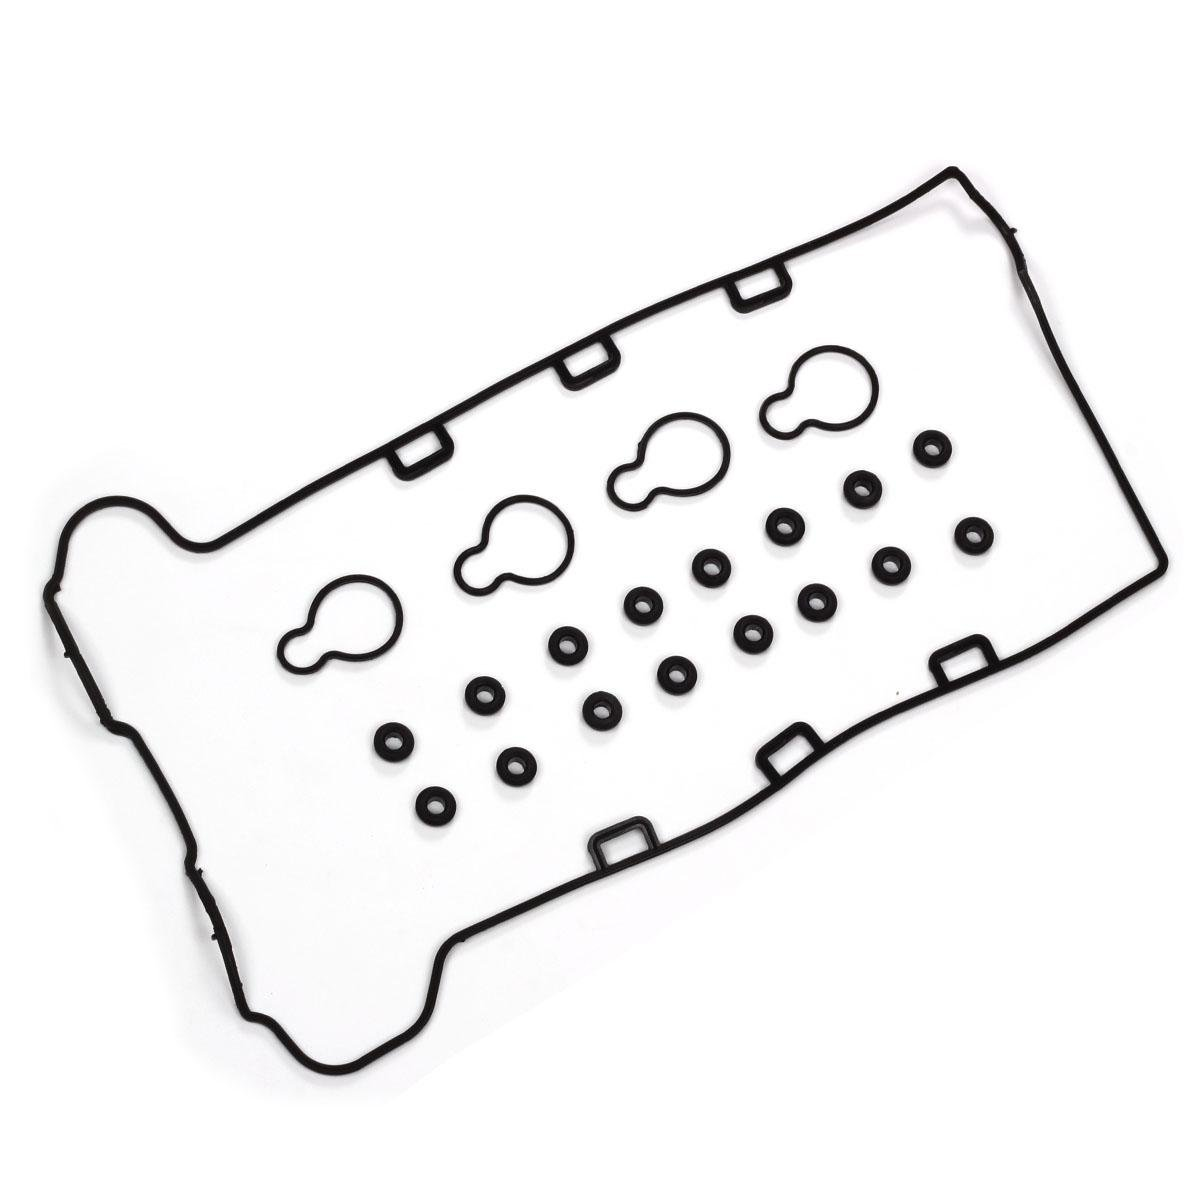 Partssquare Engine Valve Cover Gasket For 00 06 Gm 22l Oldsmobile 3 8 Diagram Pictures Dohc Ecotec Automotive